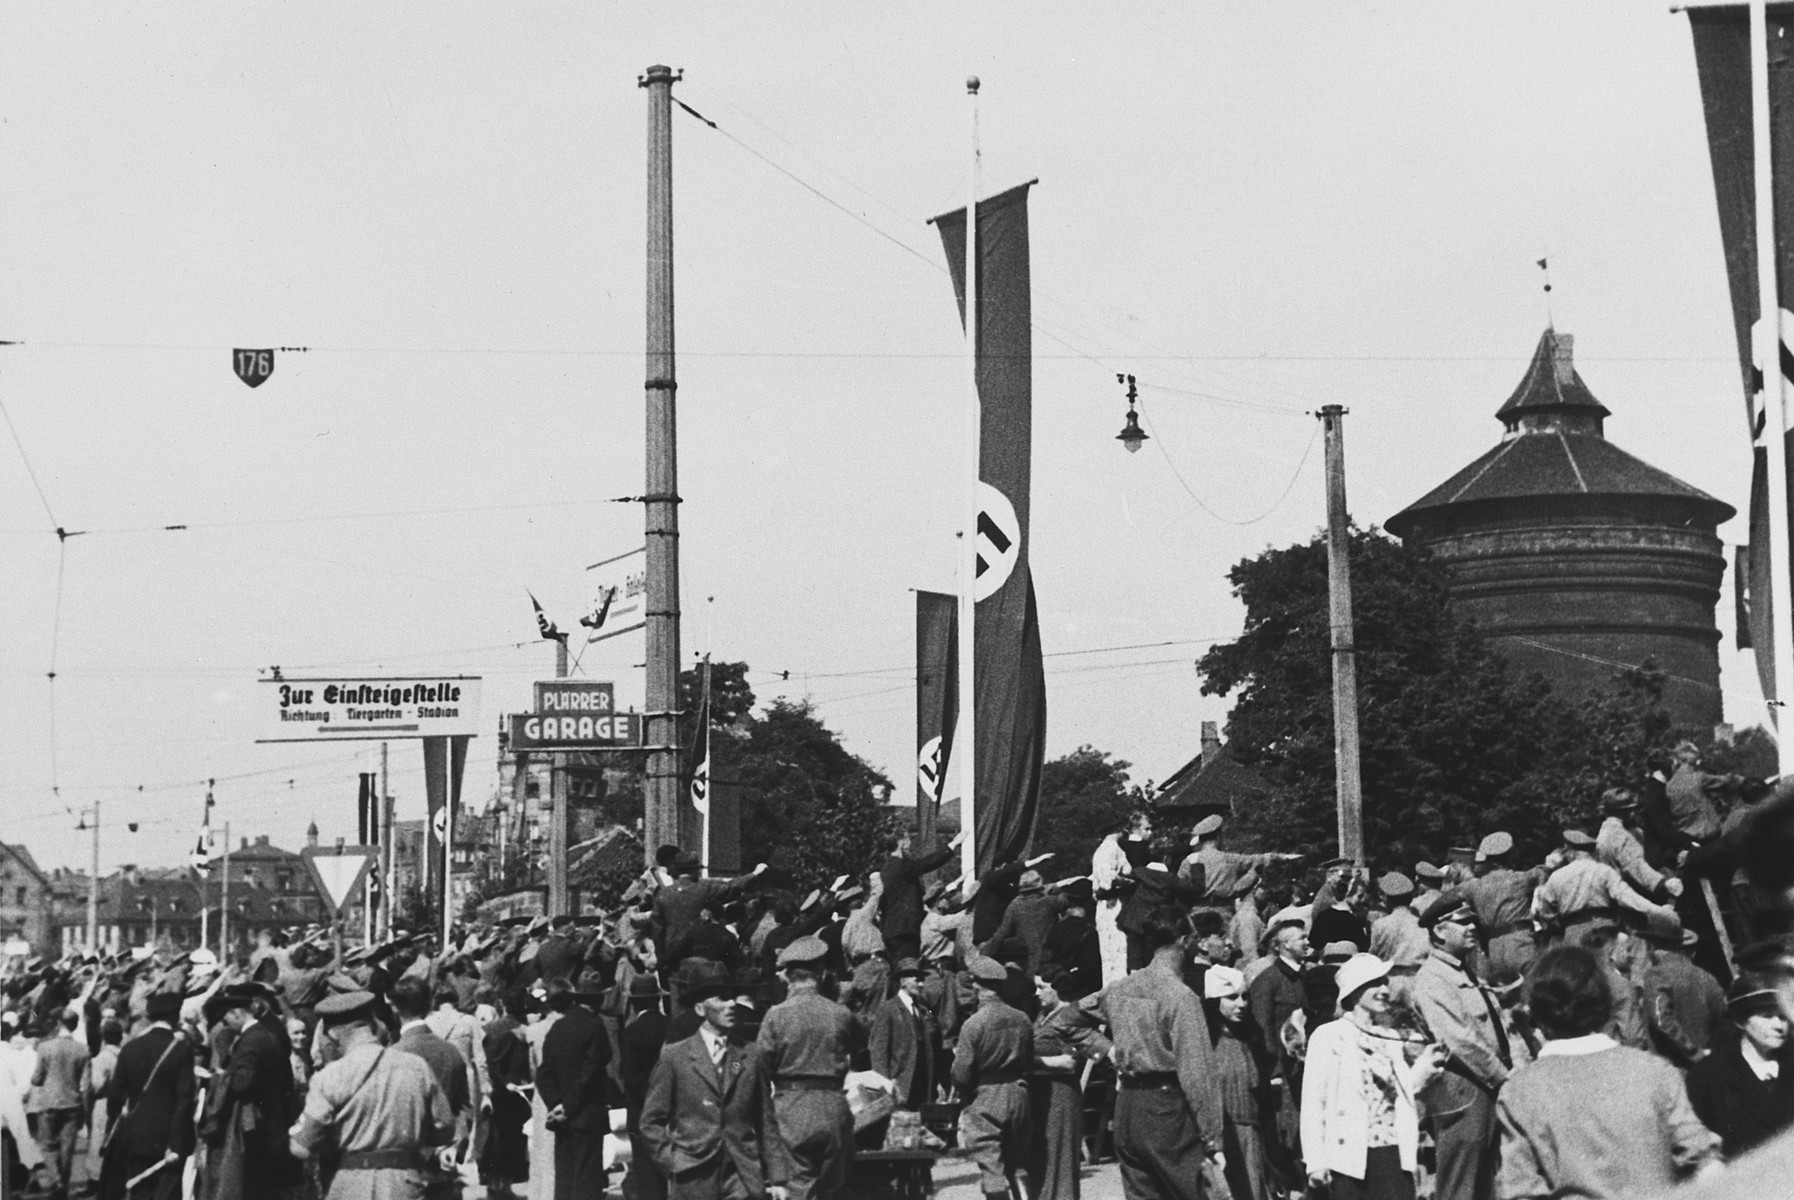 German citizens crowd together on a street in Nuremberg bedecked with Nazi flags.  This photograph was taken by a German Jewish woman, Lilli Rahn, who later emigrated.